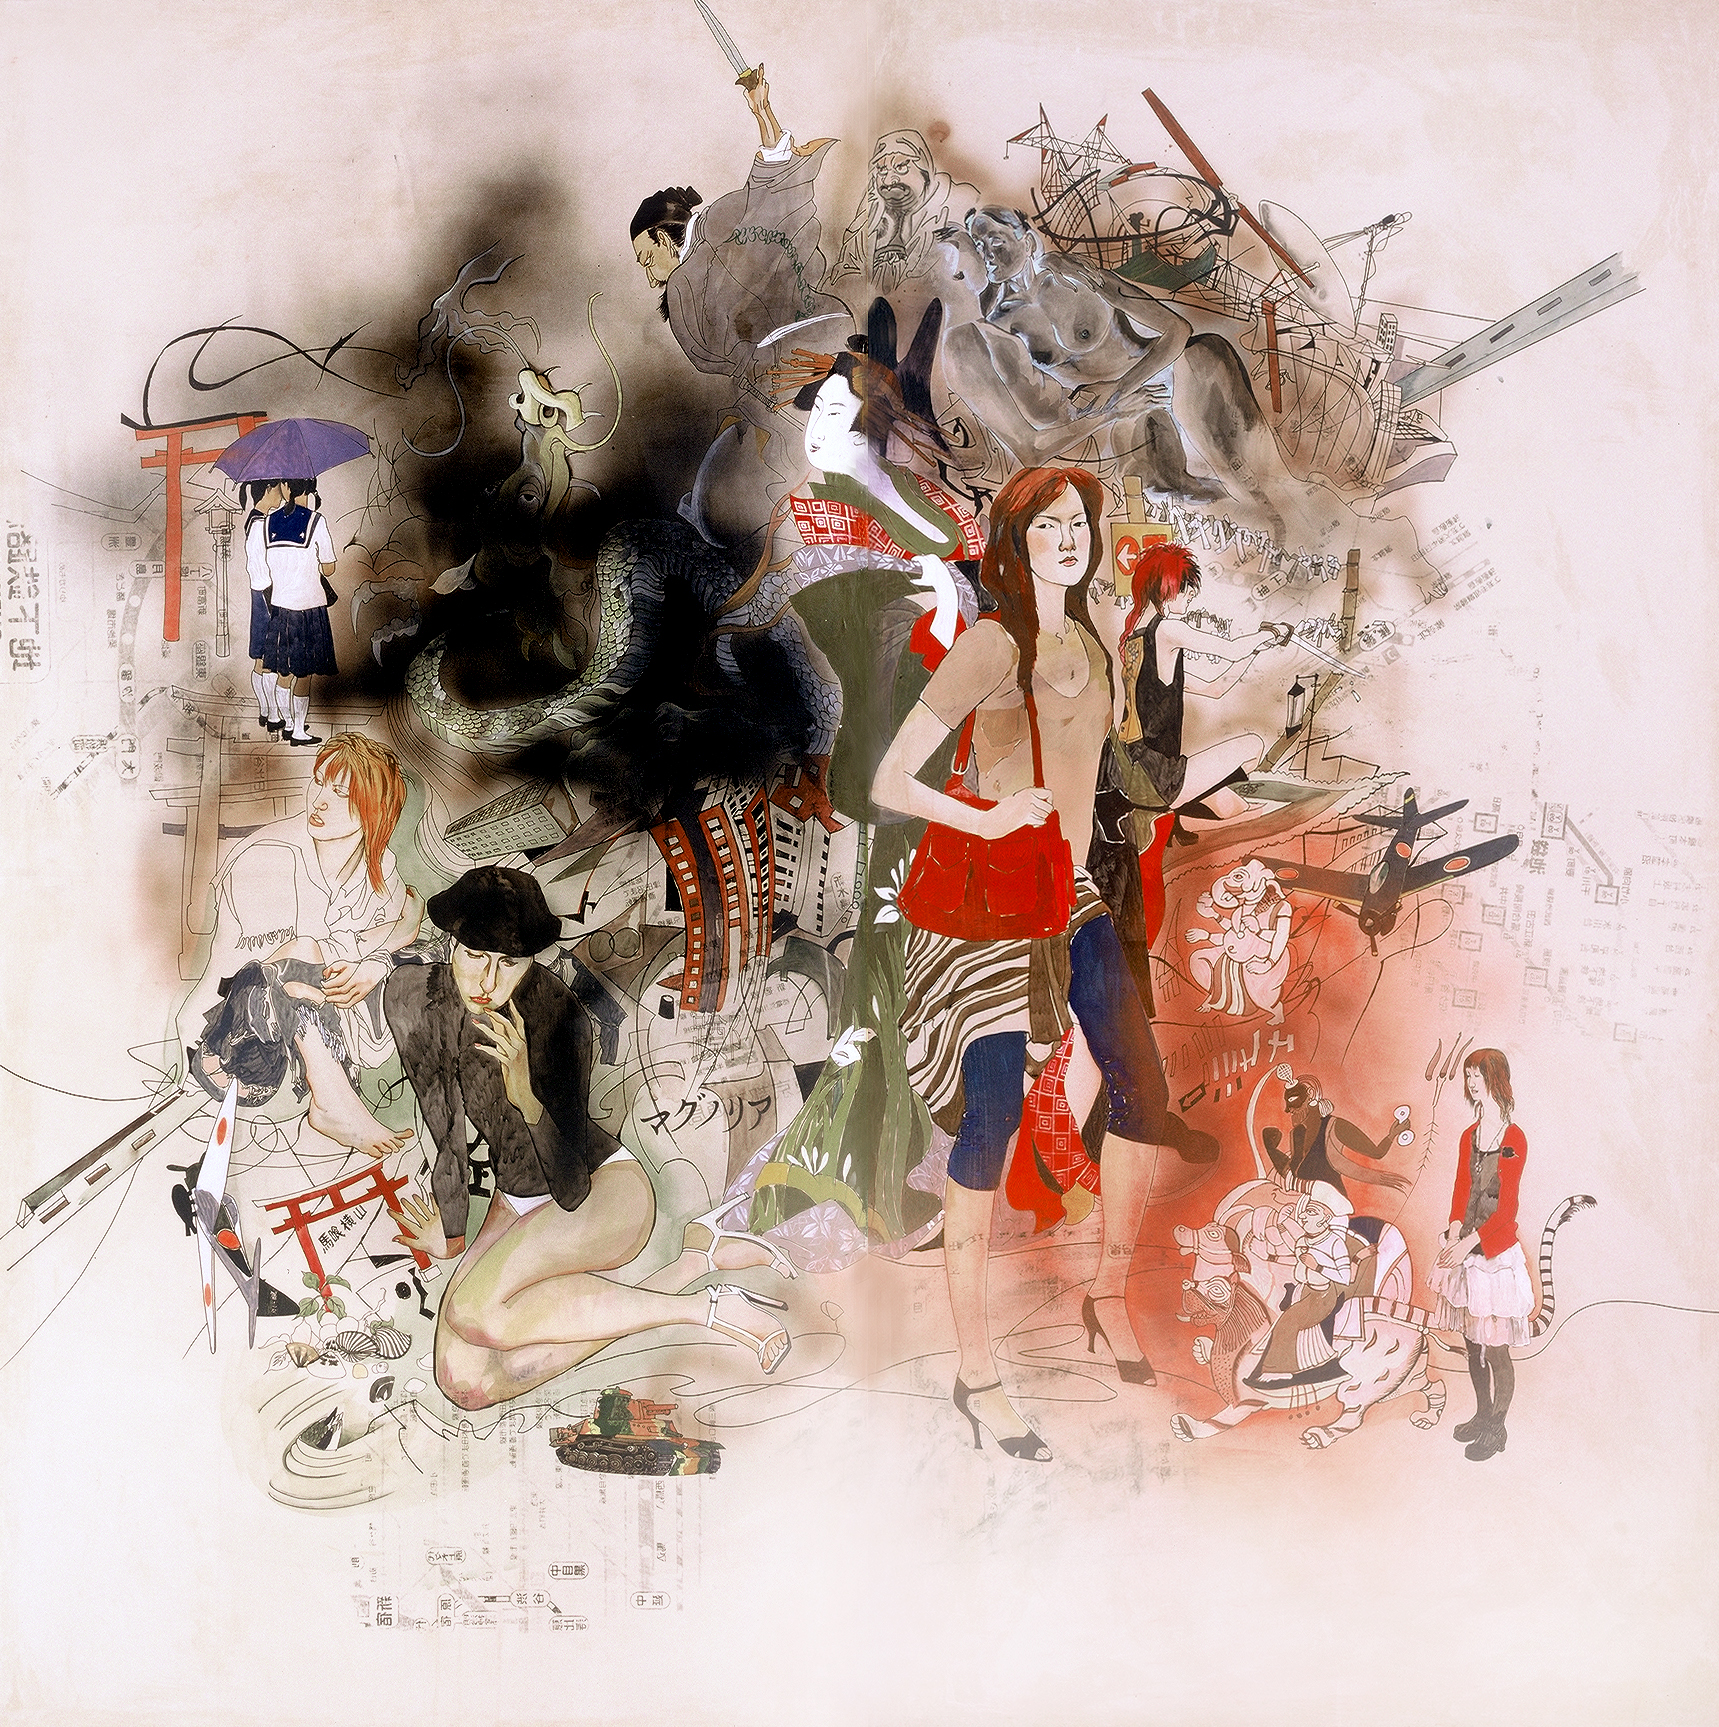 Wang Qing 王青, Tokyo Diary 东京日记, 2009, Mixed media on Japanese drafting paper and board 硫酸纸、丙烯综合材料, 170 x 160 cm